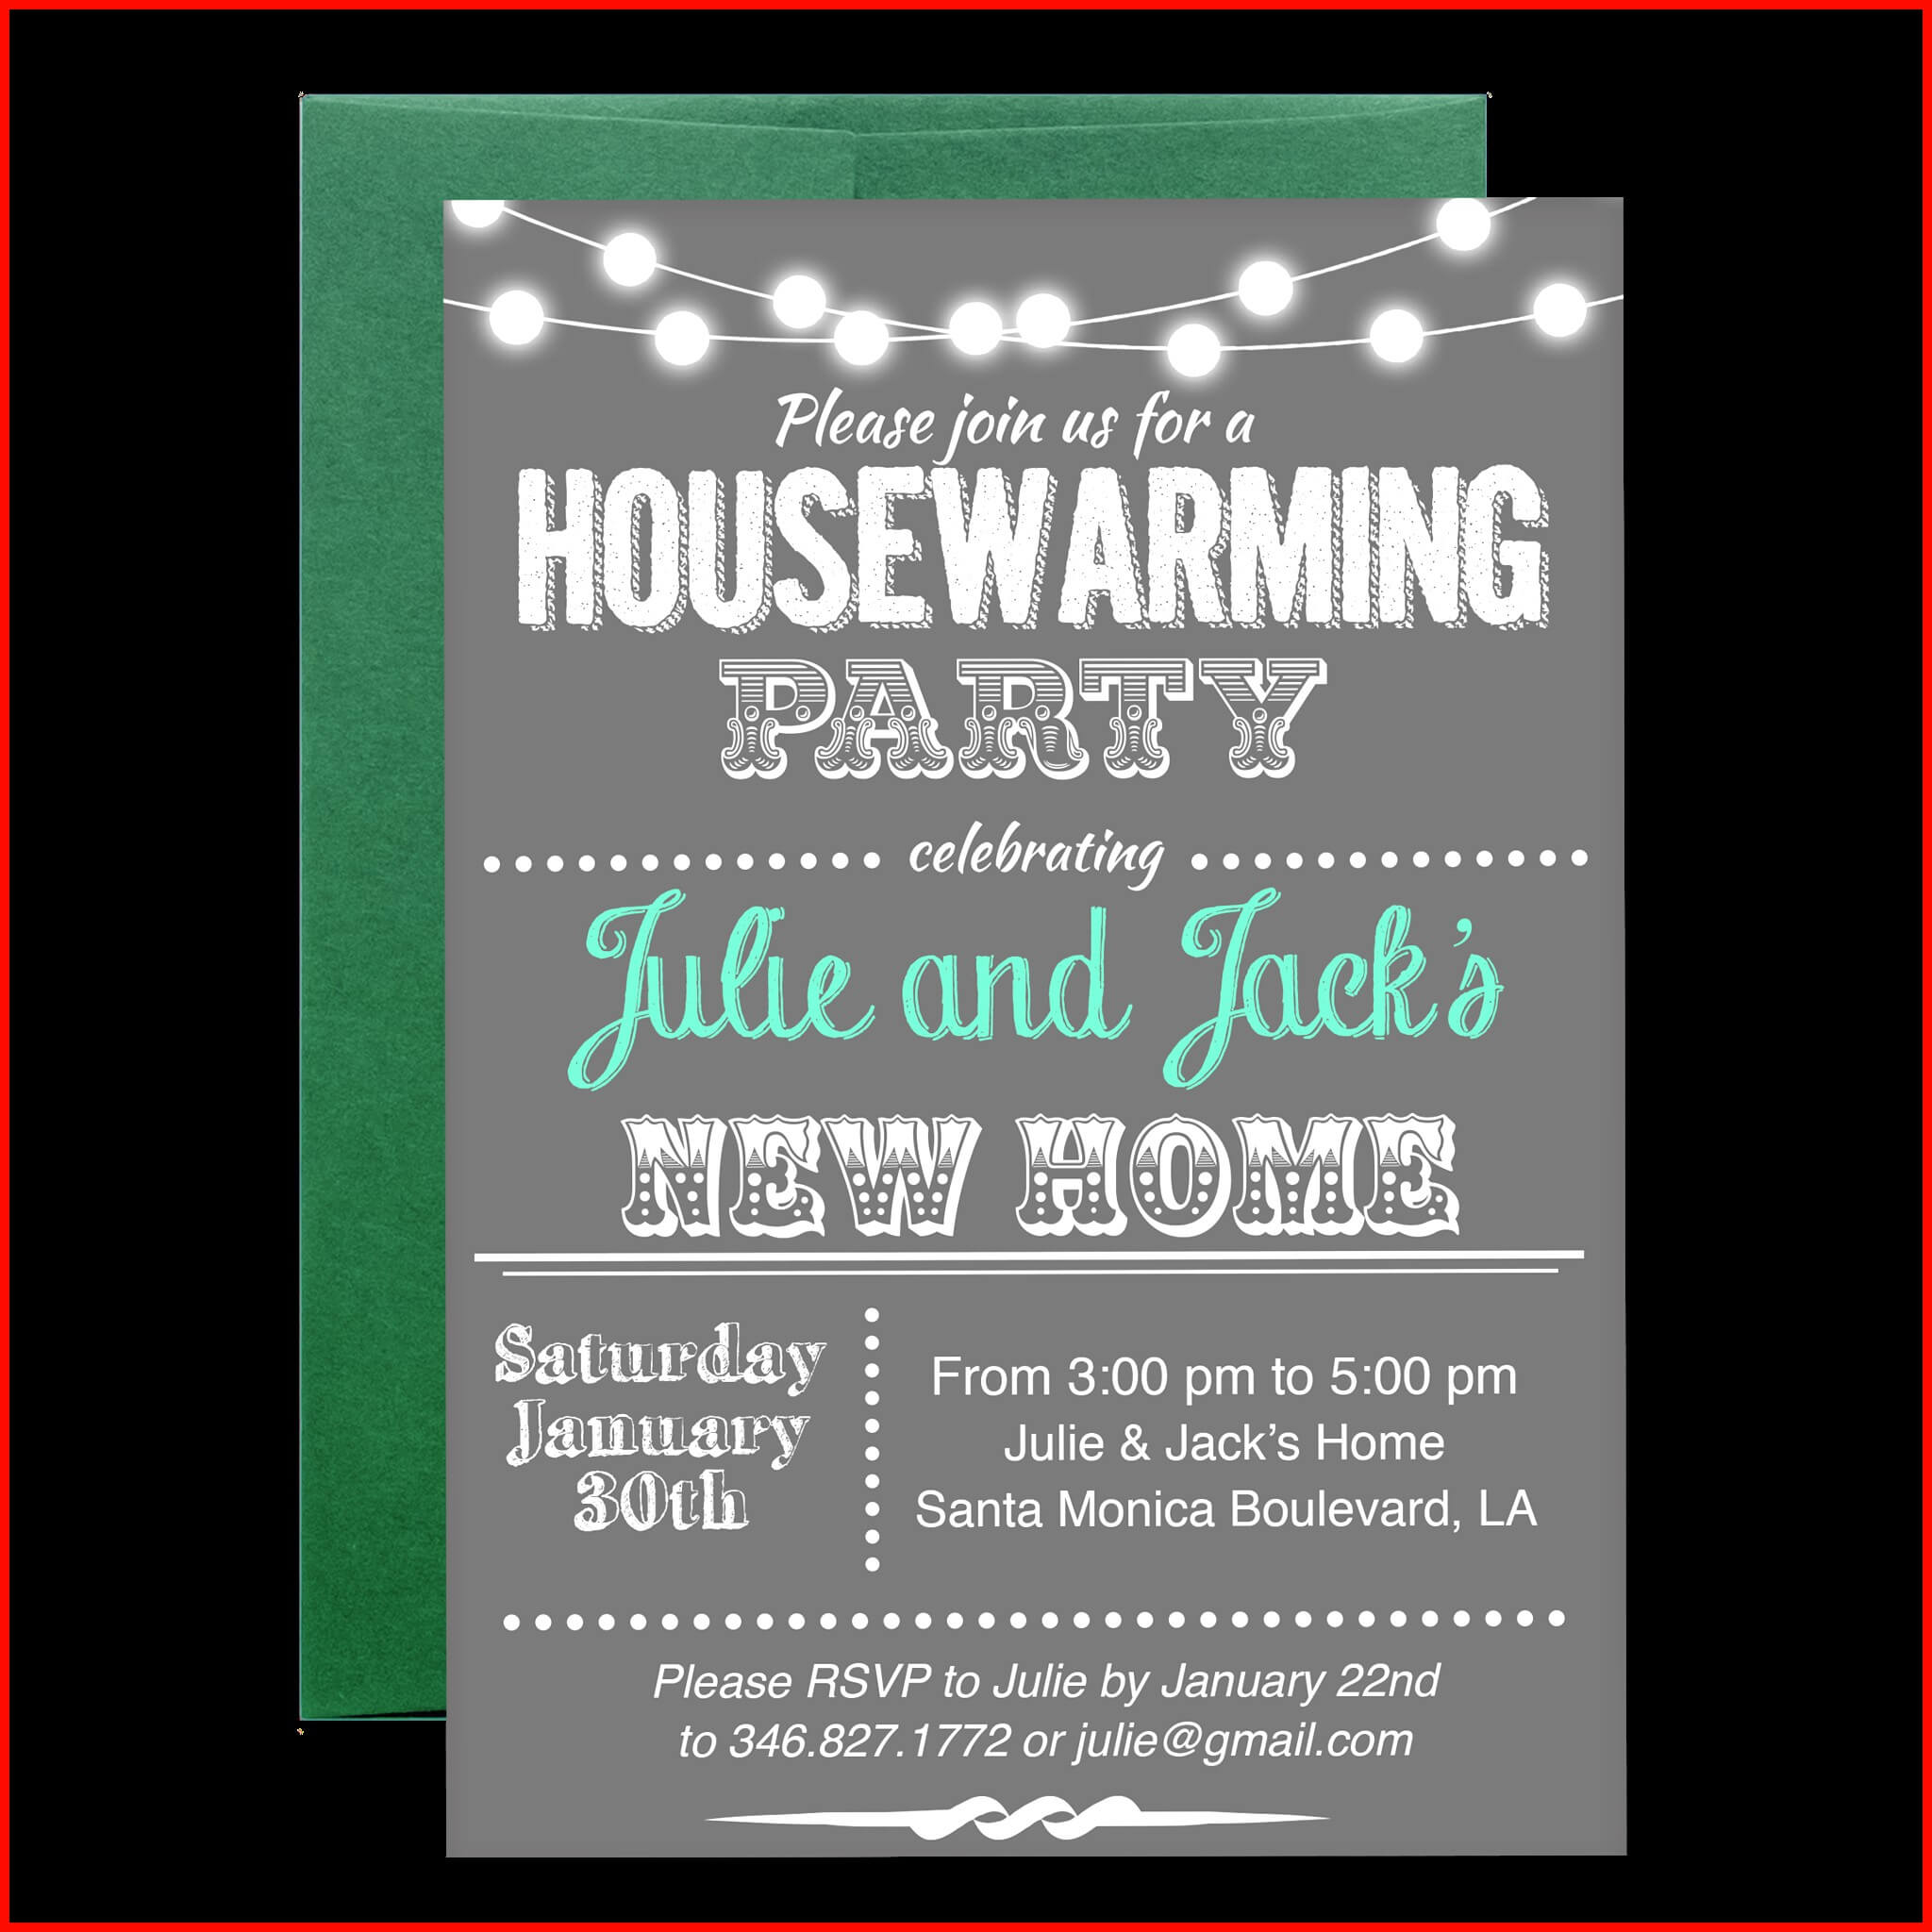 001 Open House Invitation Template Free Ideas Housewarming Pertaining To Business Open House Invitation Templates Free